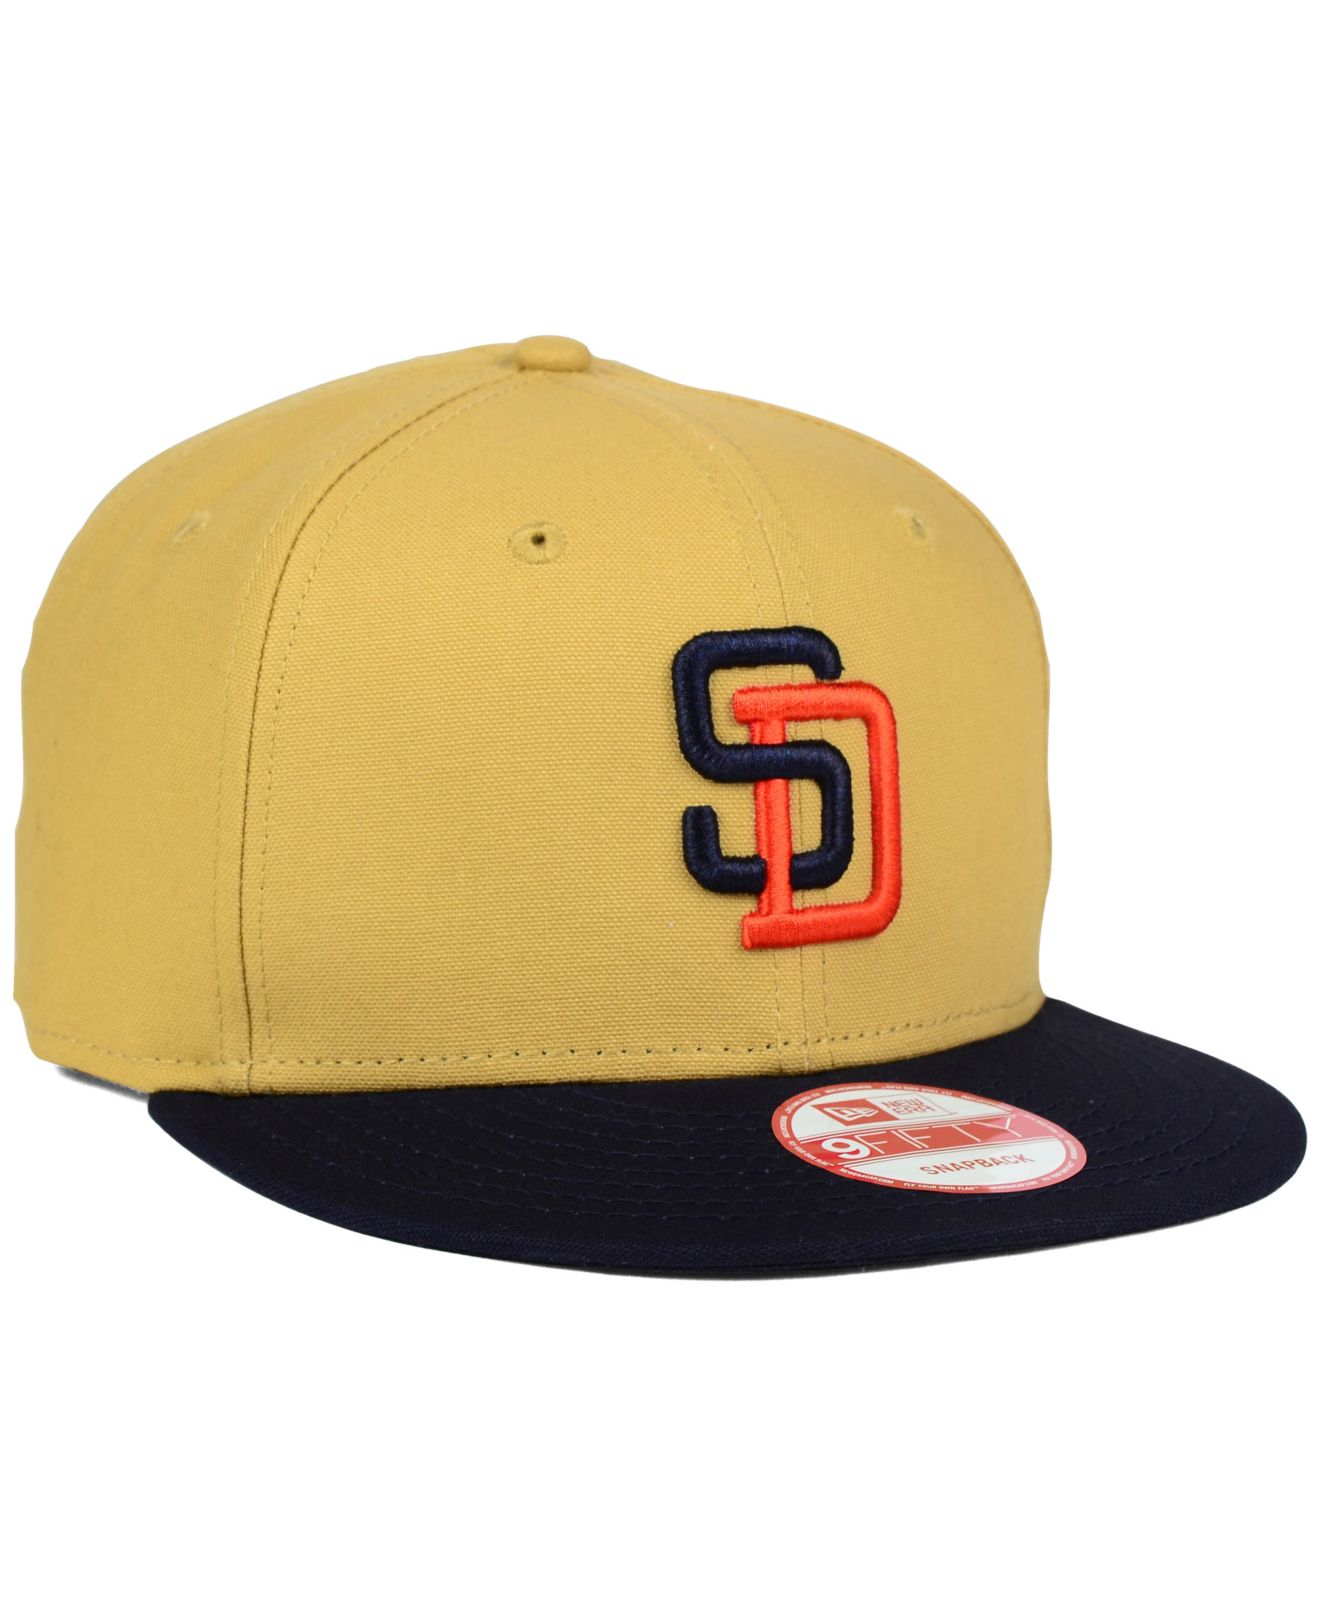 check out 60f0f a6419 spain new era mlb heather graphite 9fifty snapback cap 9967a 568d4   netherlands lyst ktz san diego padres classic canvas 9fifty snapback cap in  c972b 26593